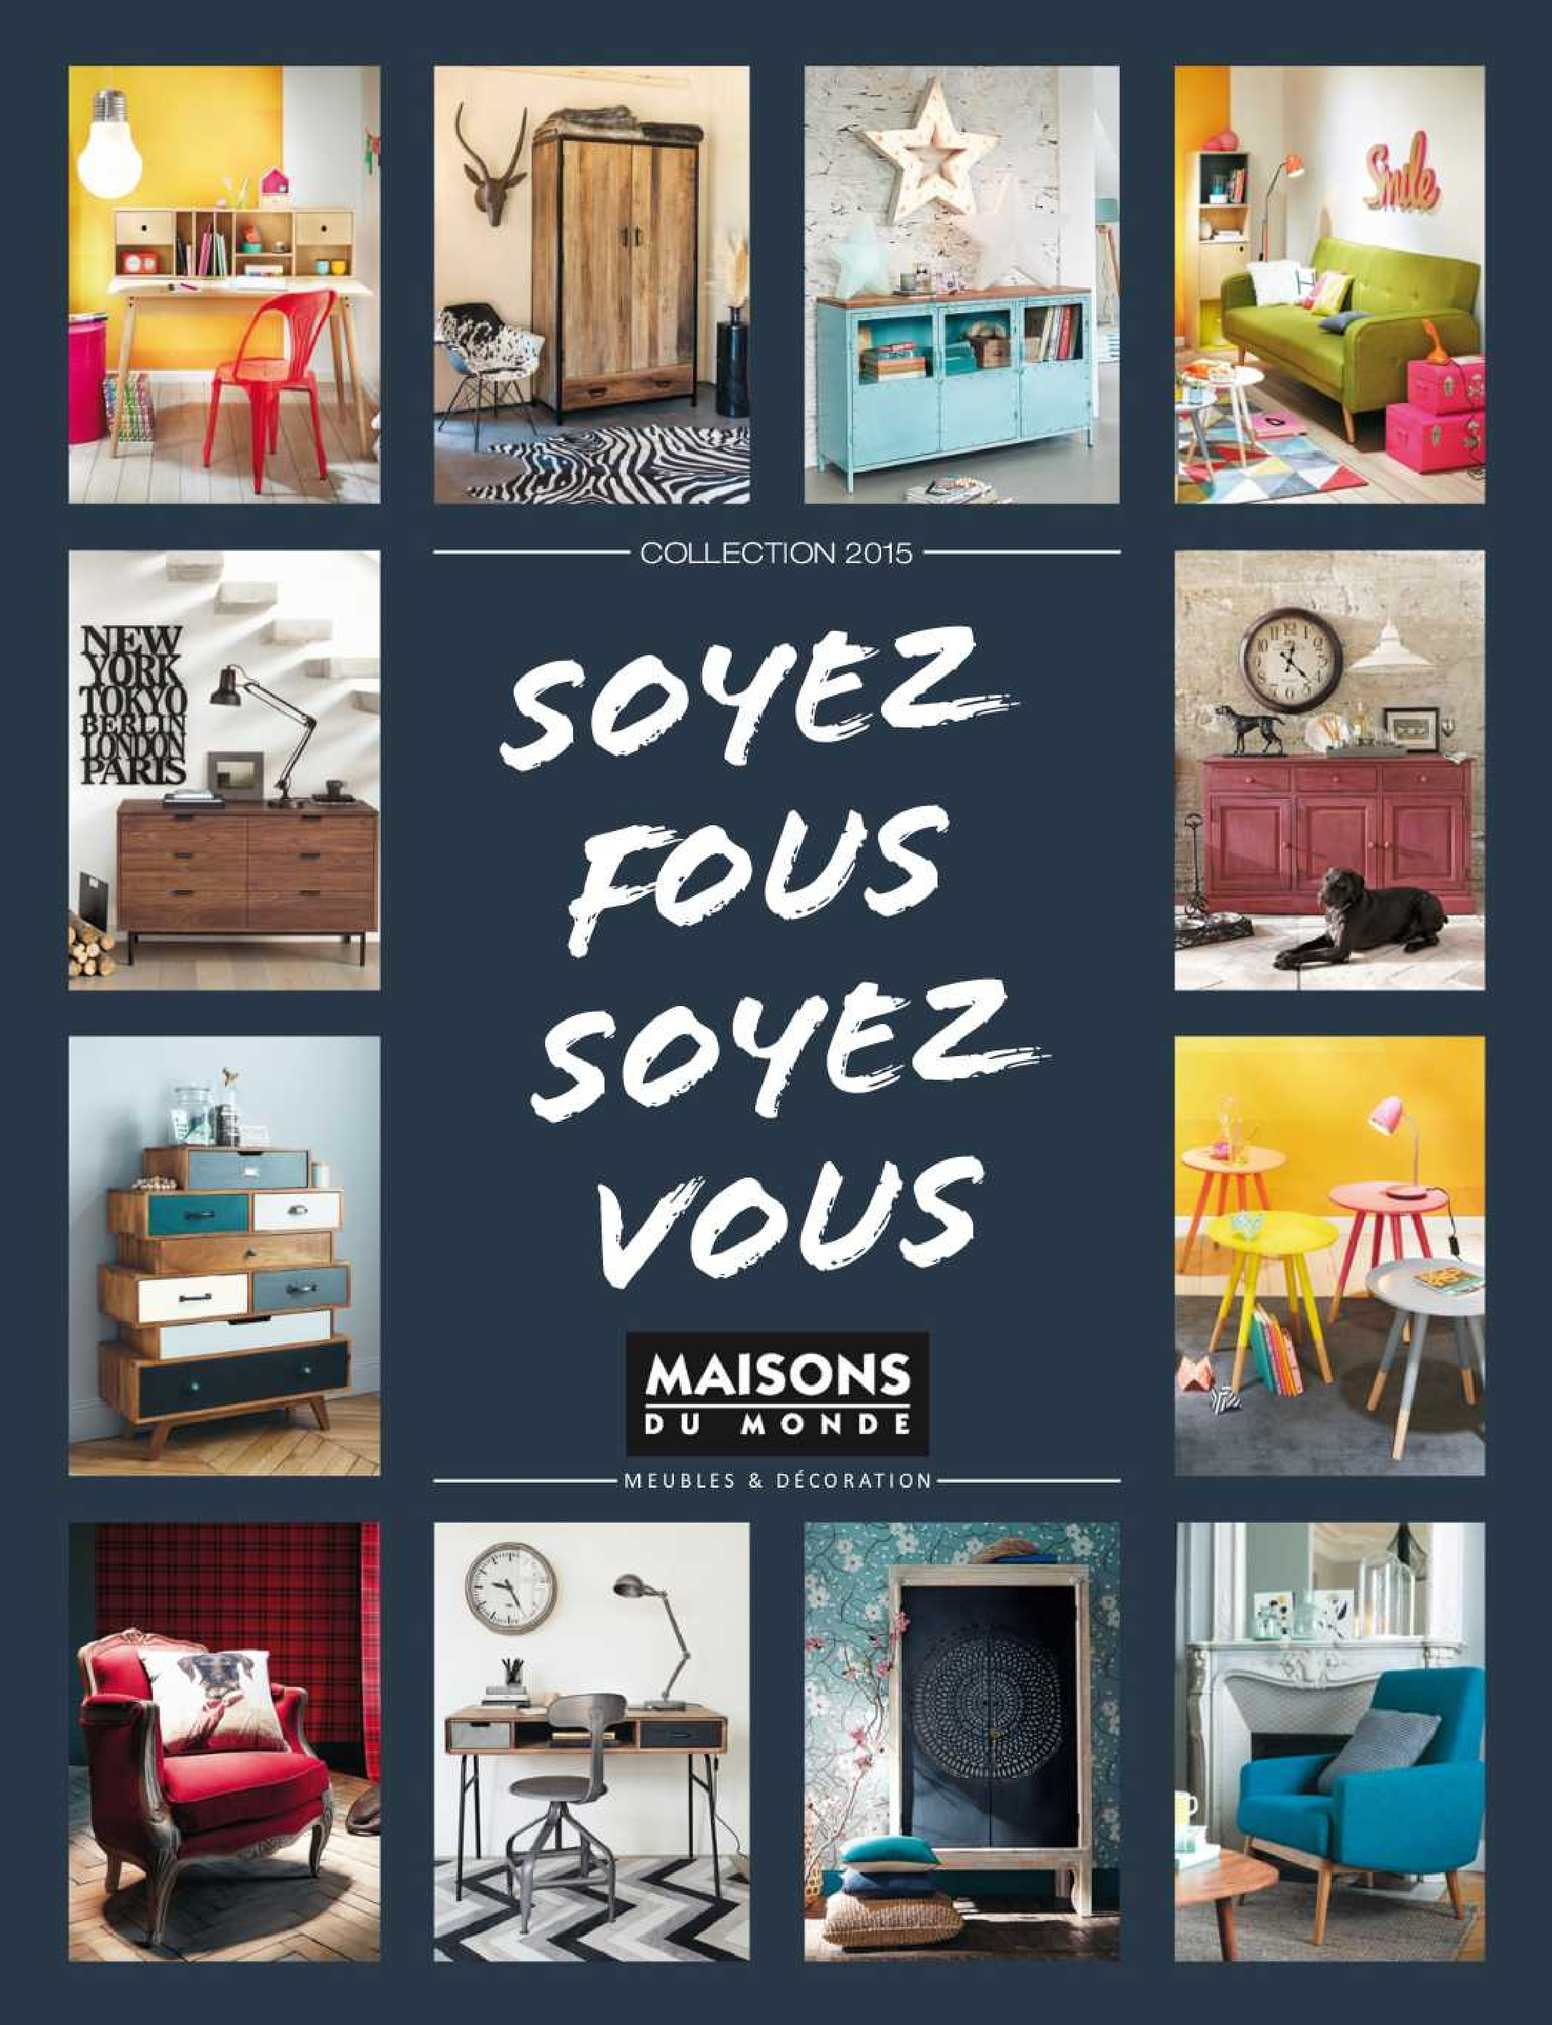 Calam o catalogo maisons du monde 2015 for Maison du monde waves